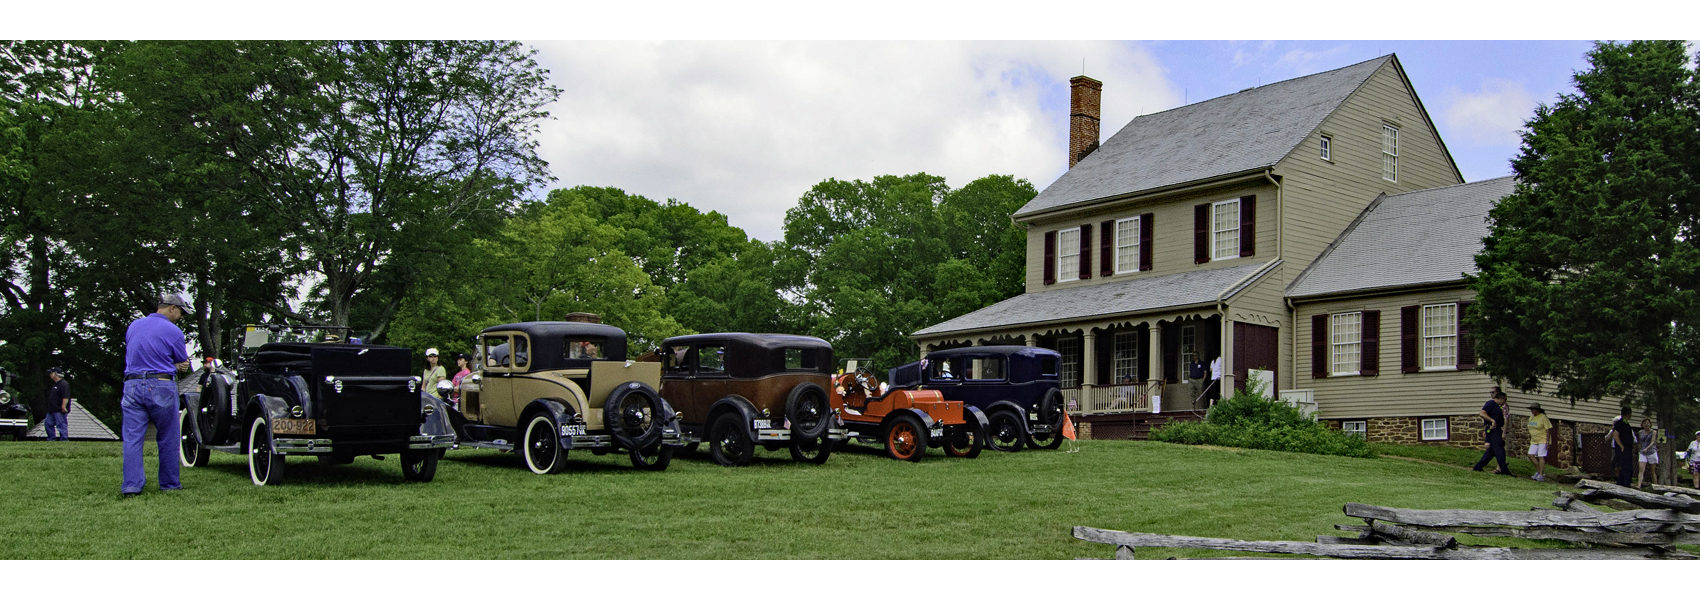 Several early 20th century cars lined up in front of Sully's historic house